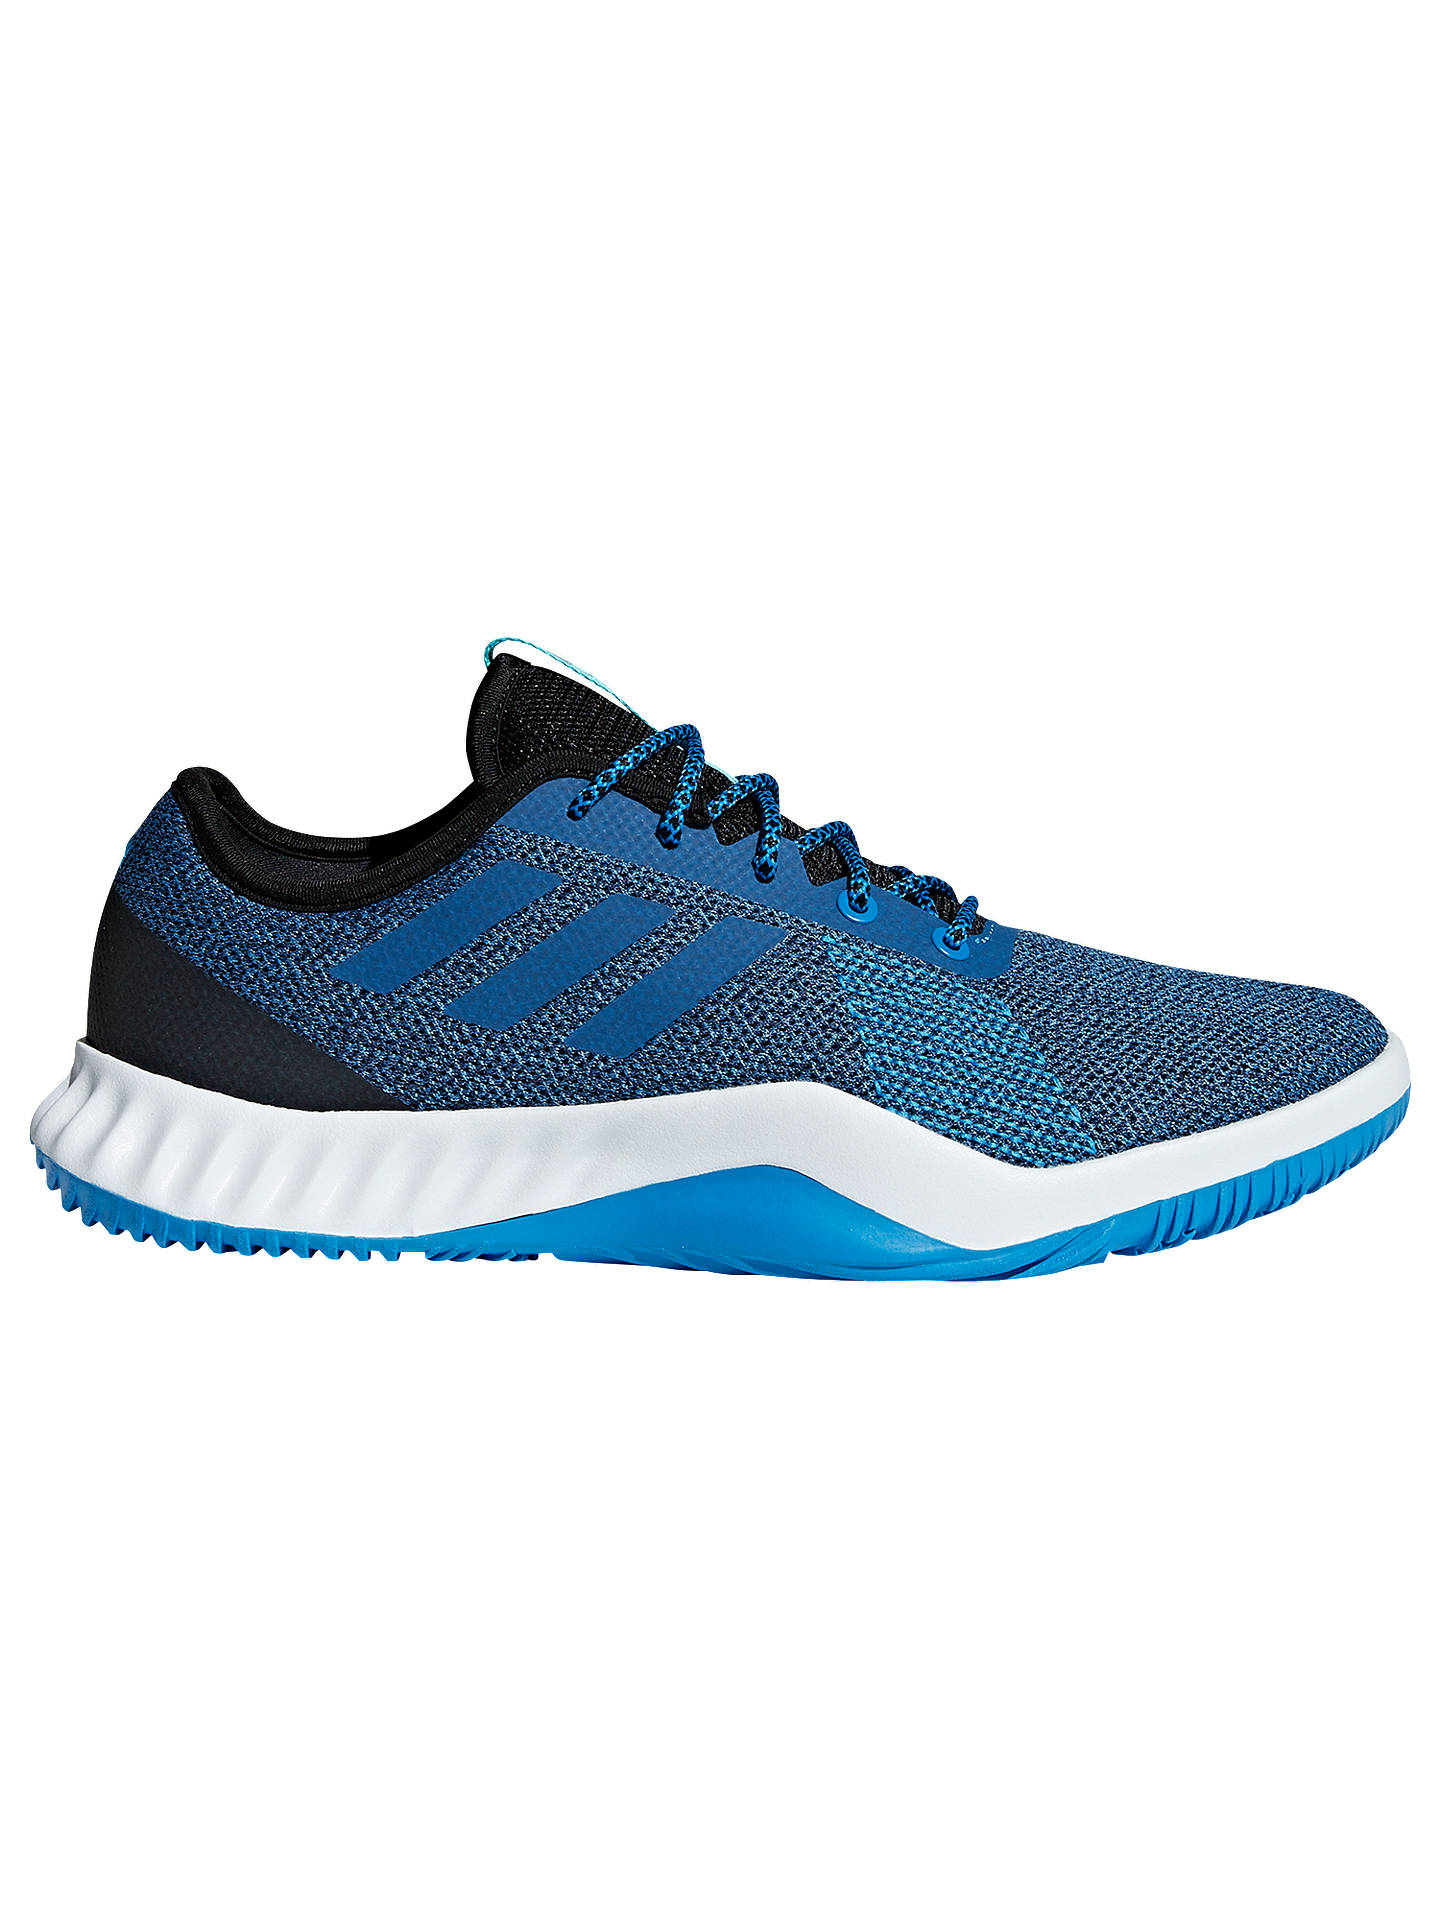 7c1e1f3e035a4 Buy adidas CrazyTrain LT Men s Training Shoes